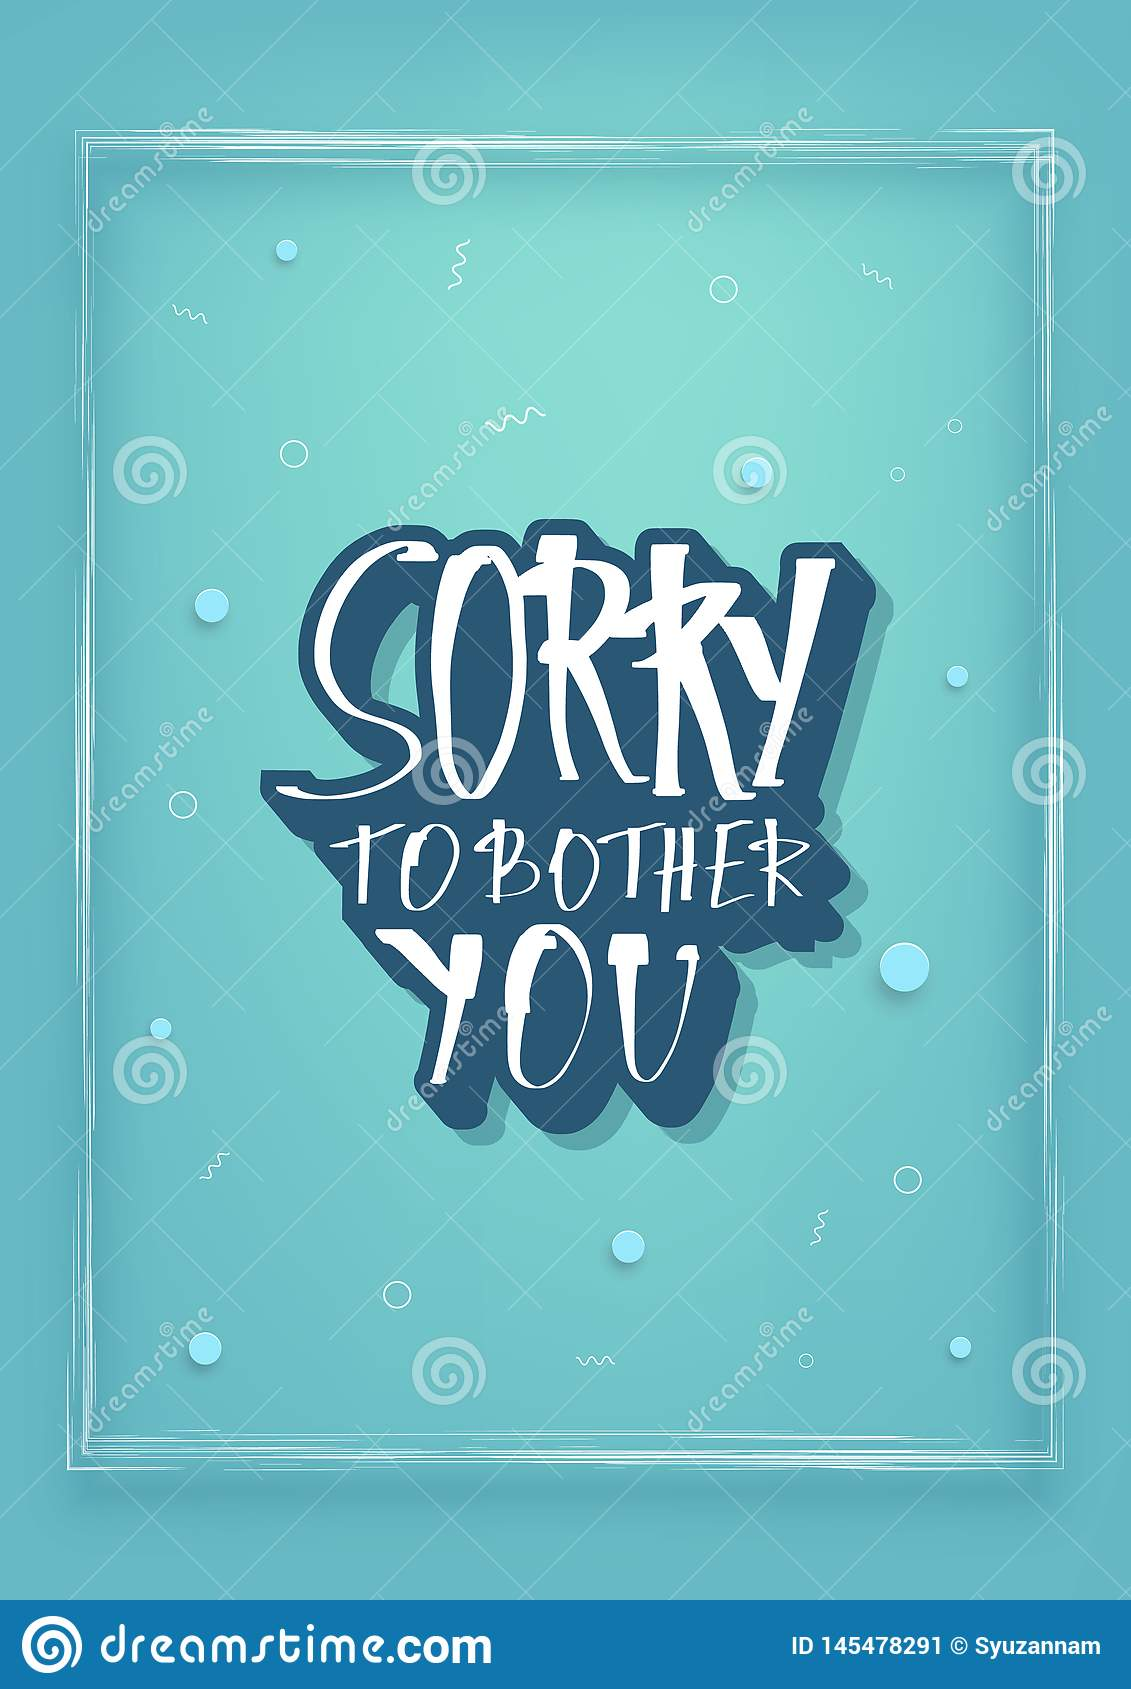 Sorry To Bother You Quote. Vector Illustration. Stock